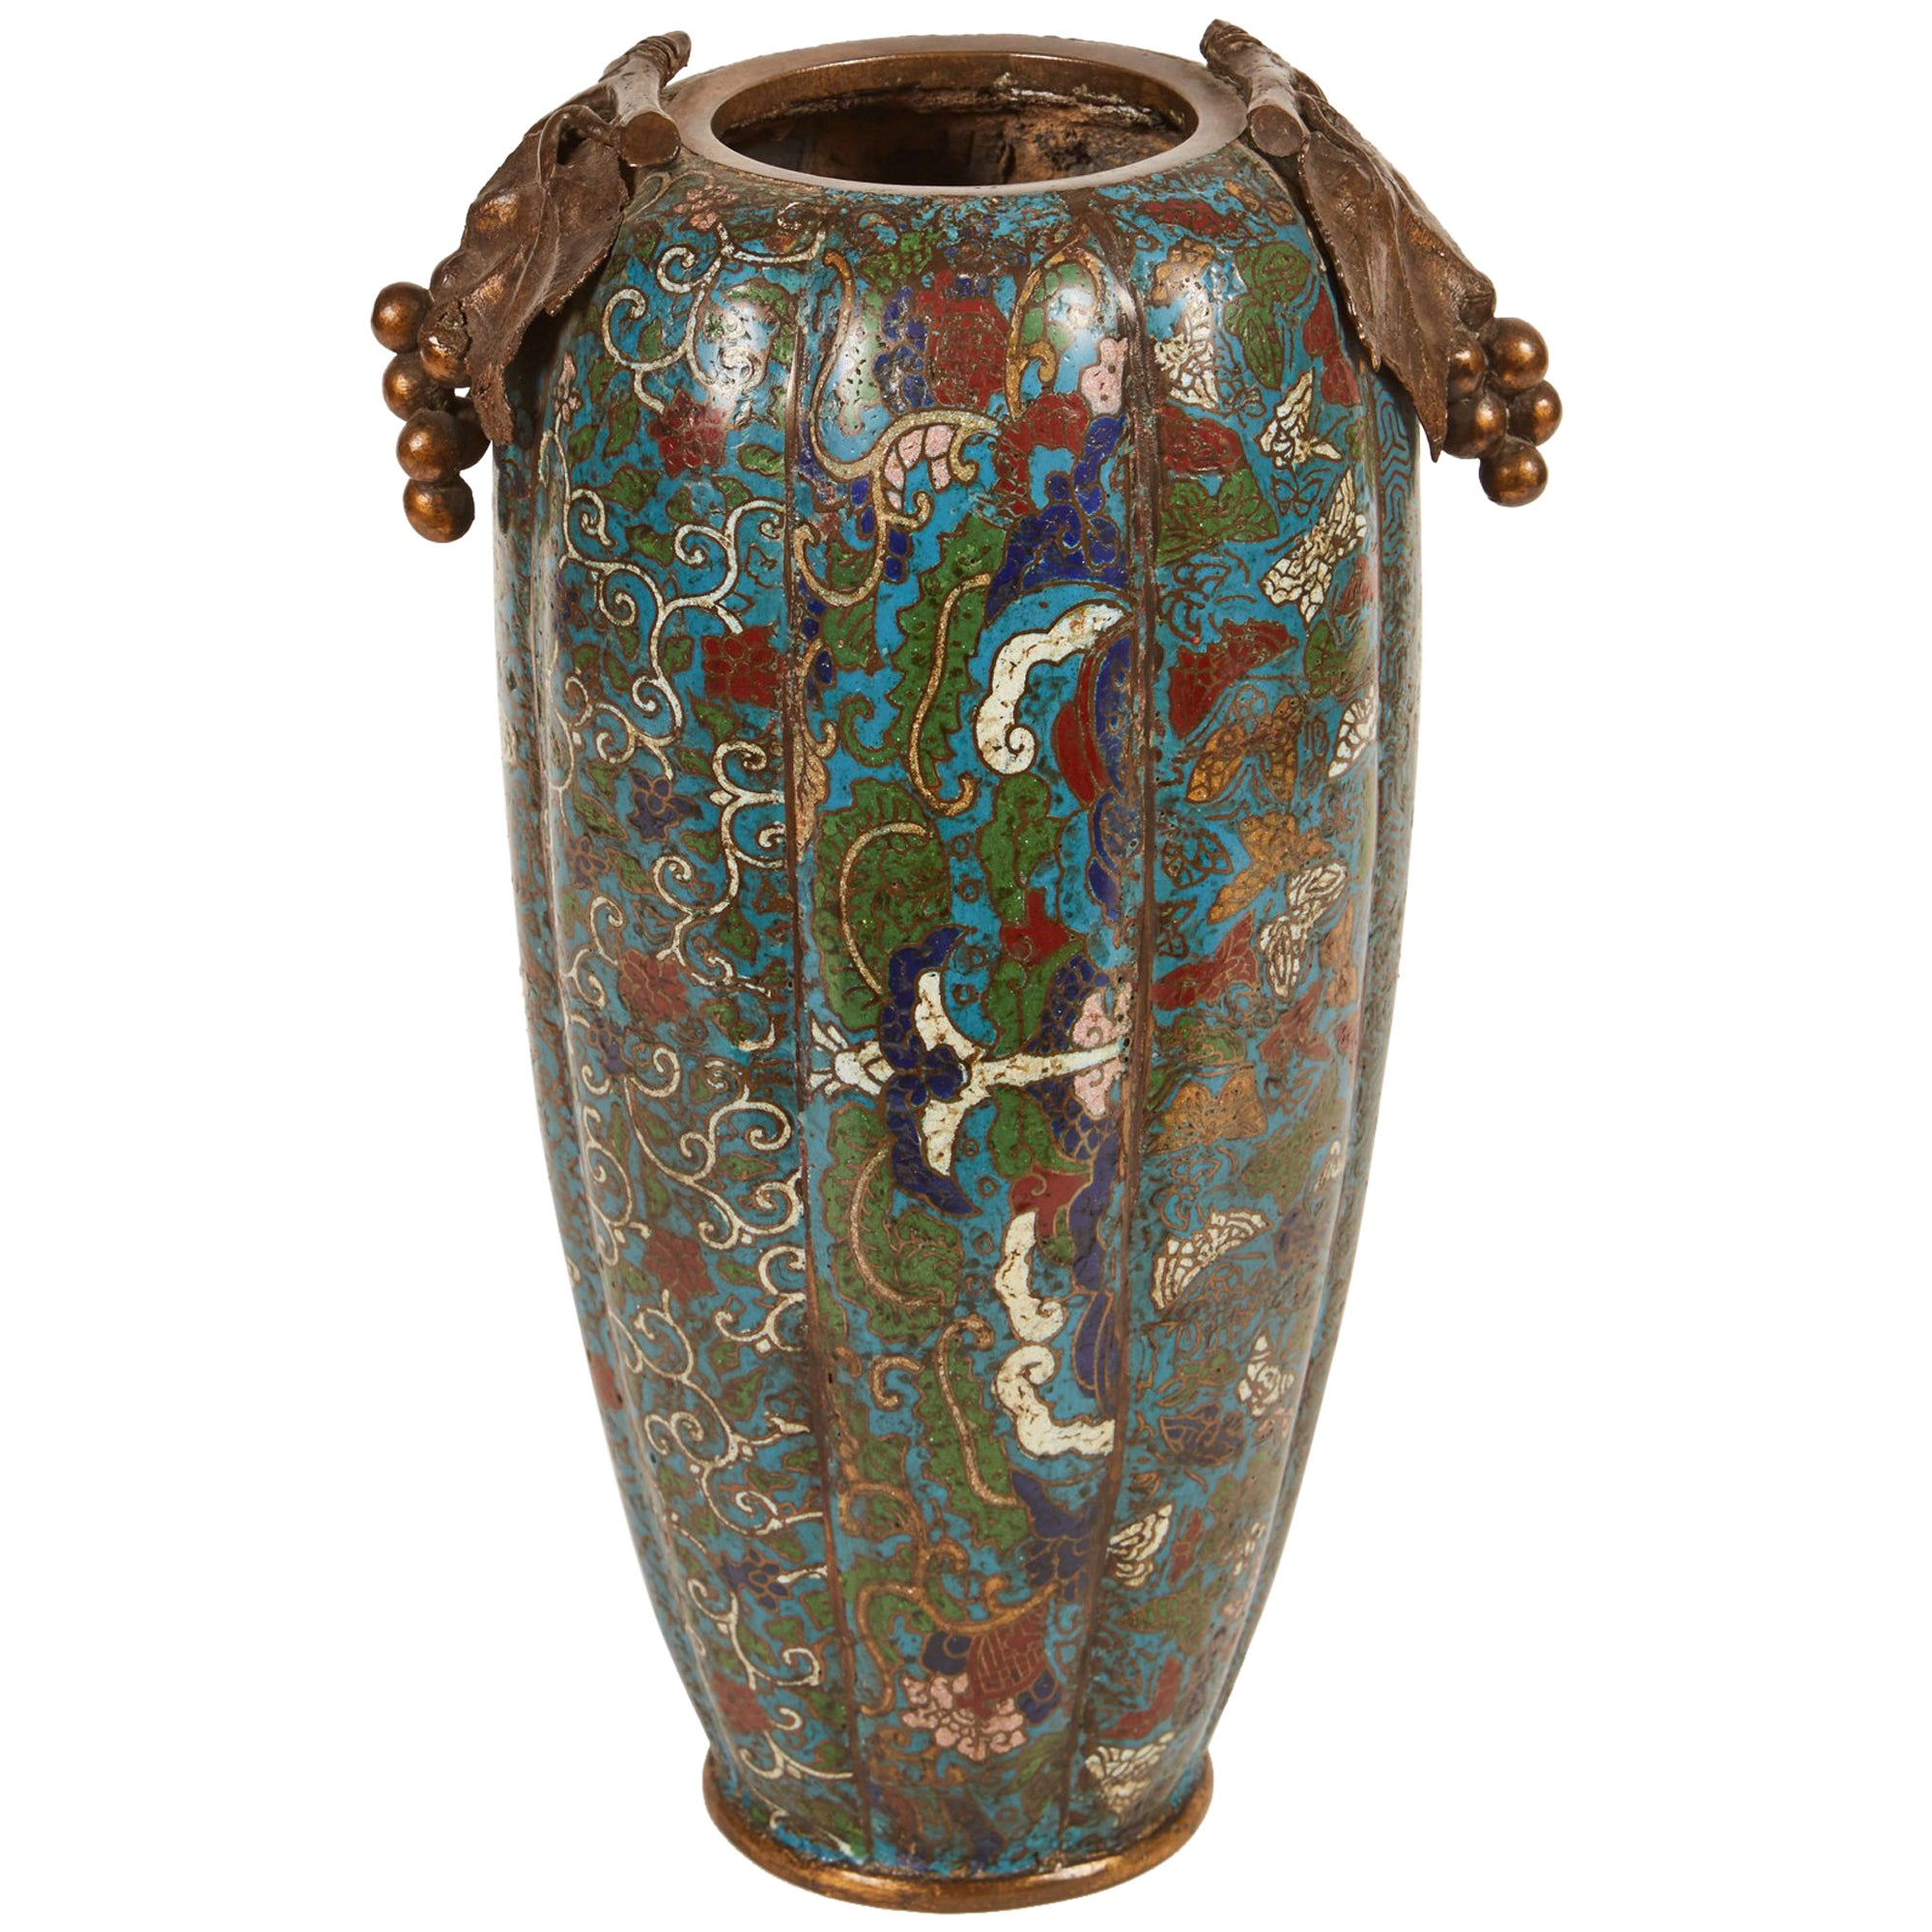 19th Century Chinese Cloisonné Vase with Grape Handles